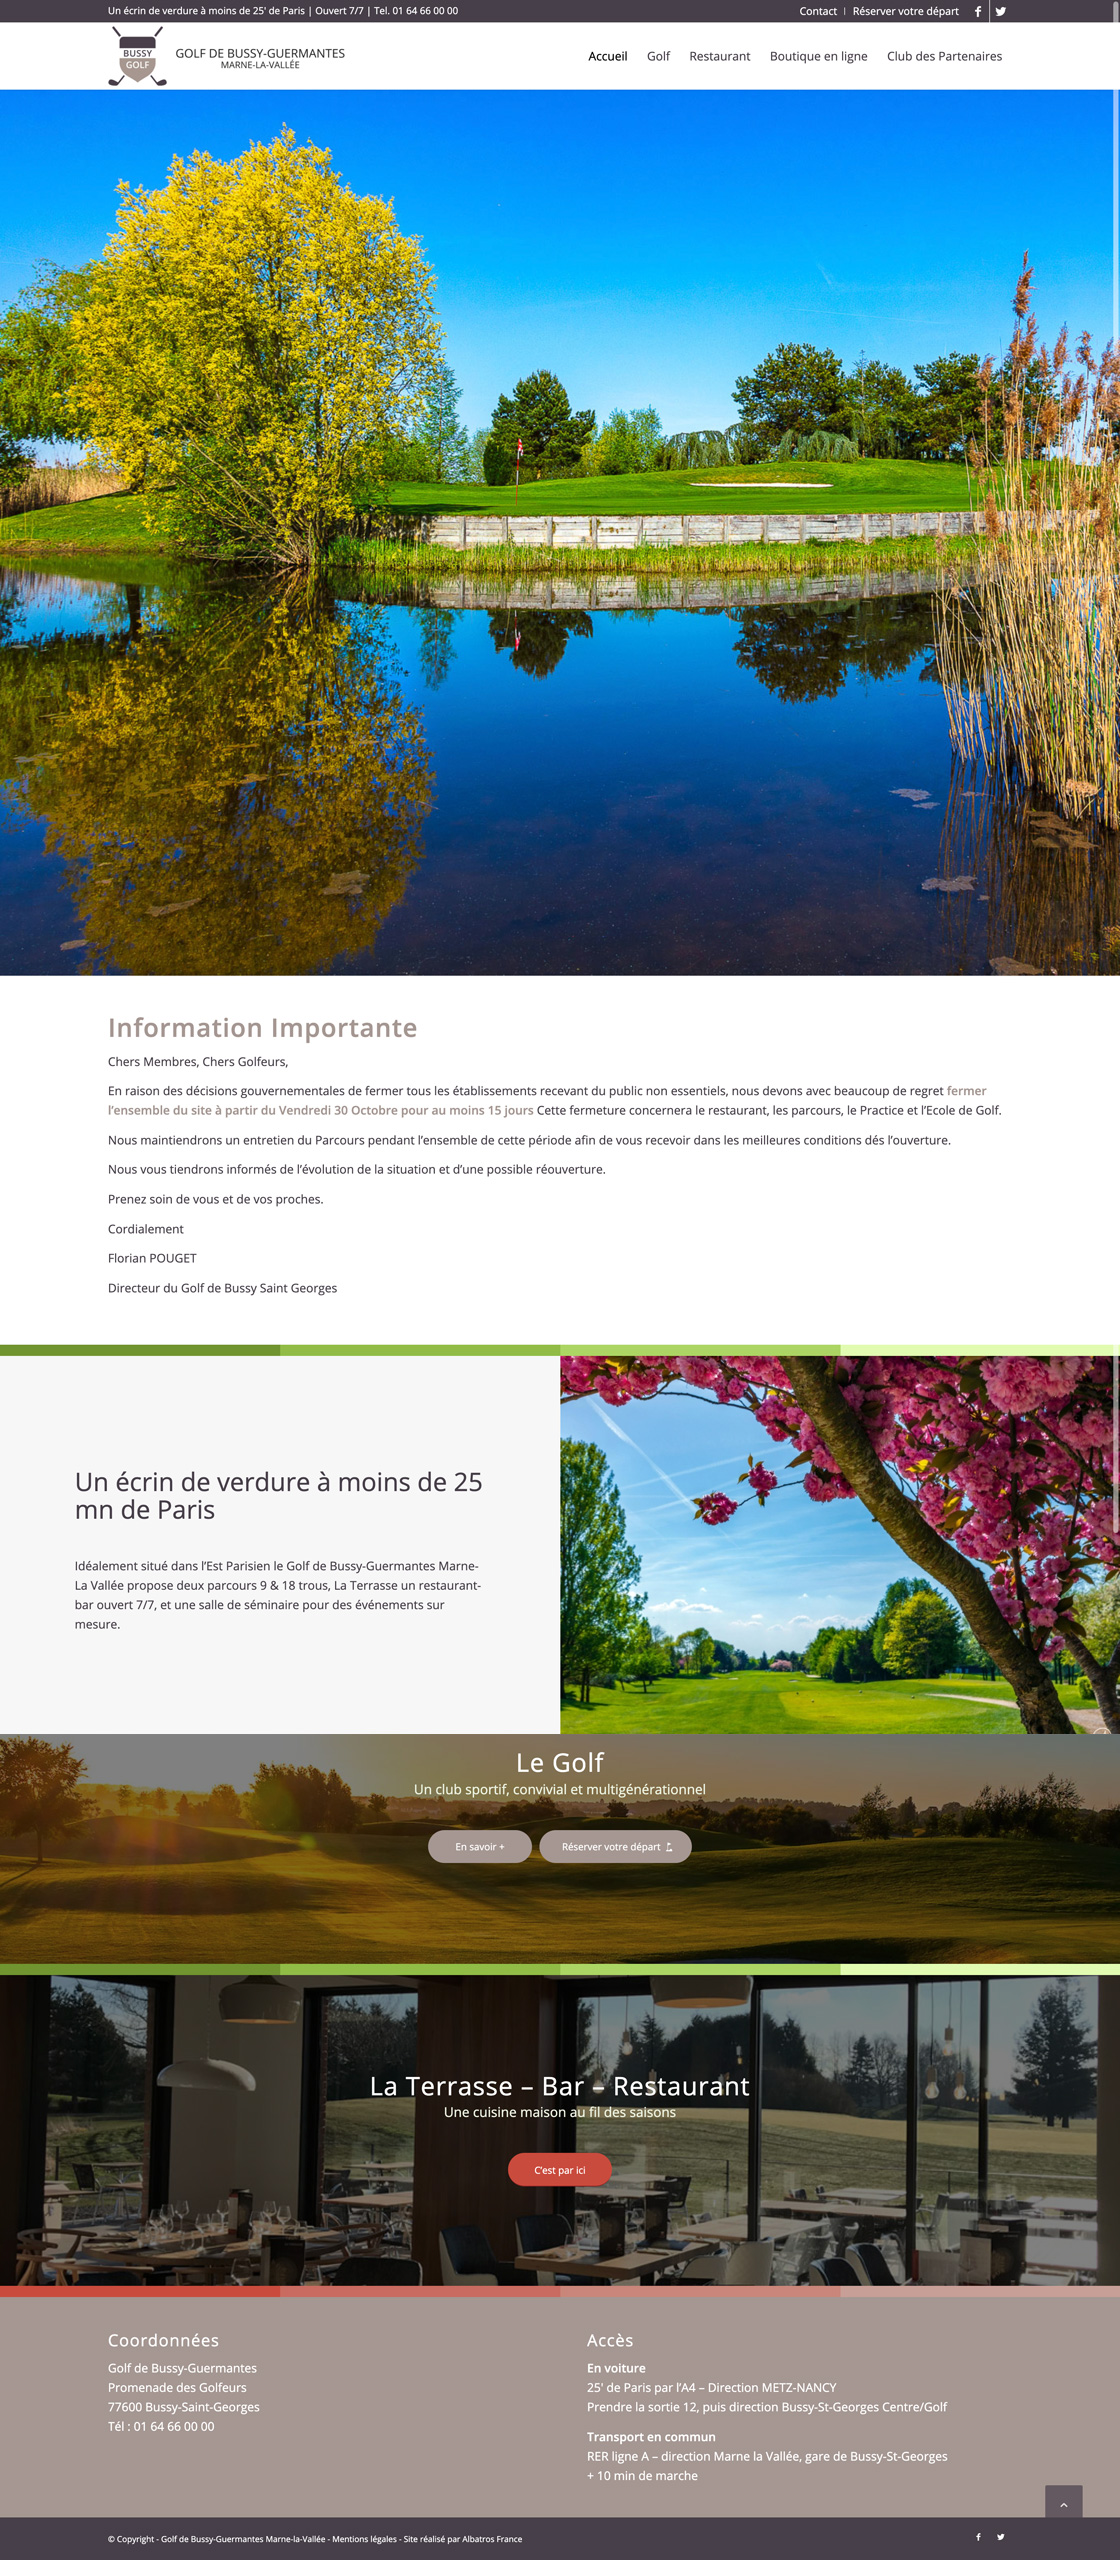 golf bussy Guermantes Marne la Vallee screenshot